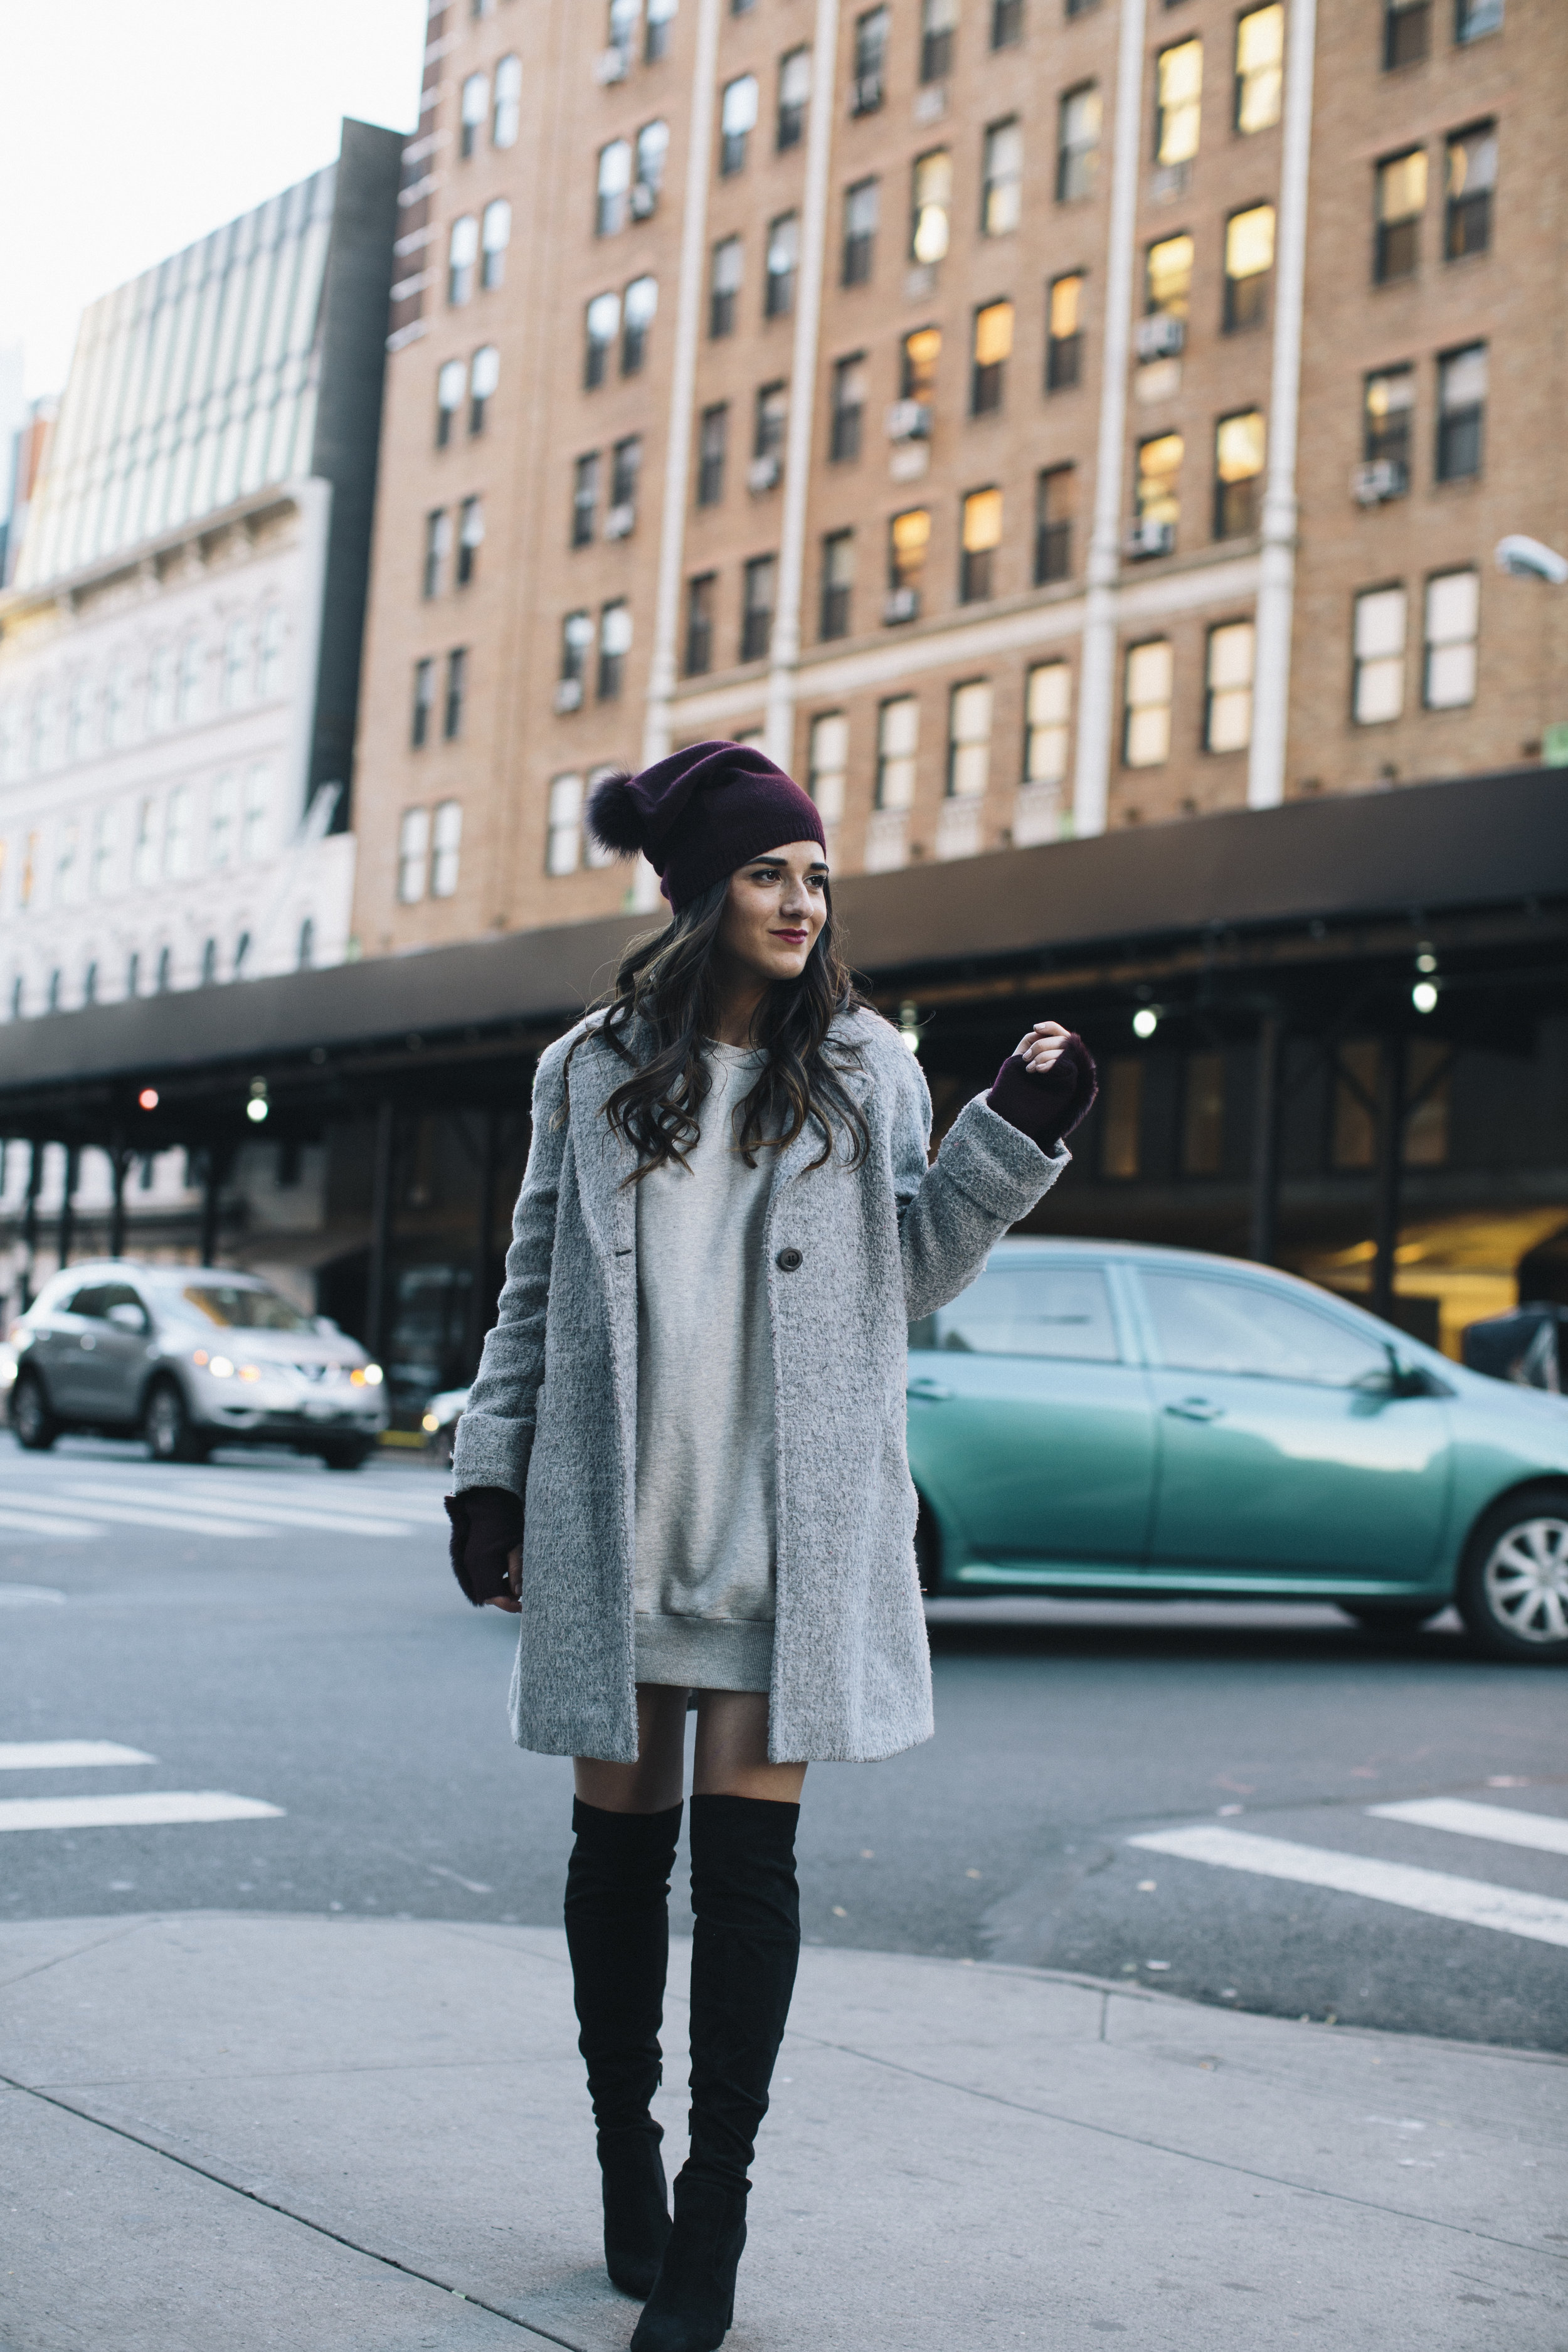 Cashmere Hat And Glove Set Piccolo New York Louboutins & Love Fashion Blog Esther Santer NYC Street Style Blogger Outfit OOTD Trendy Winter Wear Cold Weather Online Shopping Holiday Season Grey Coat Zara Sweatshirt Dress OTK Black Boots Women Buy Cozy.jpg